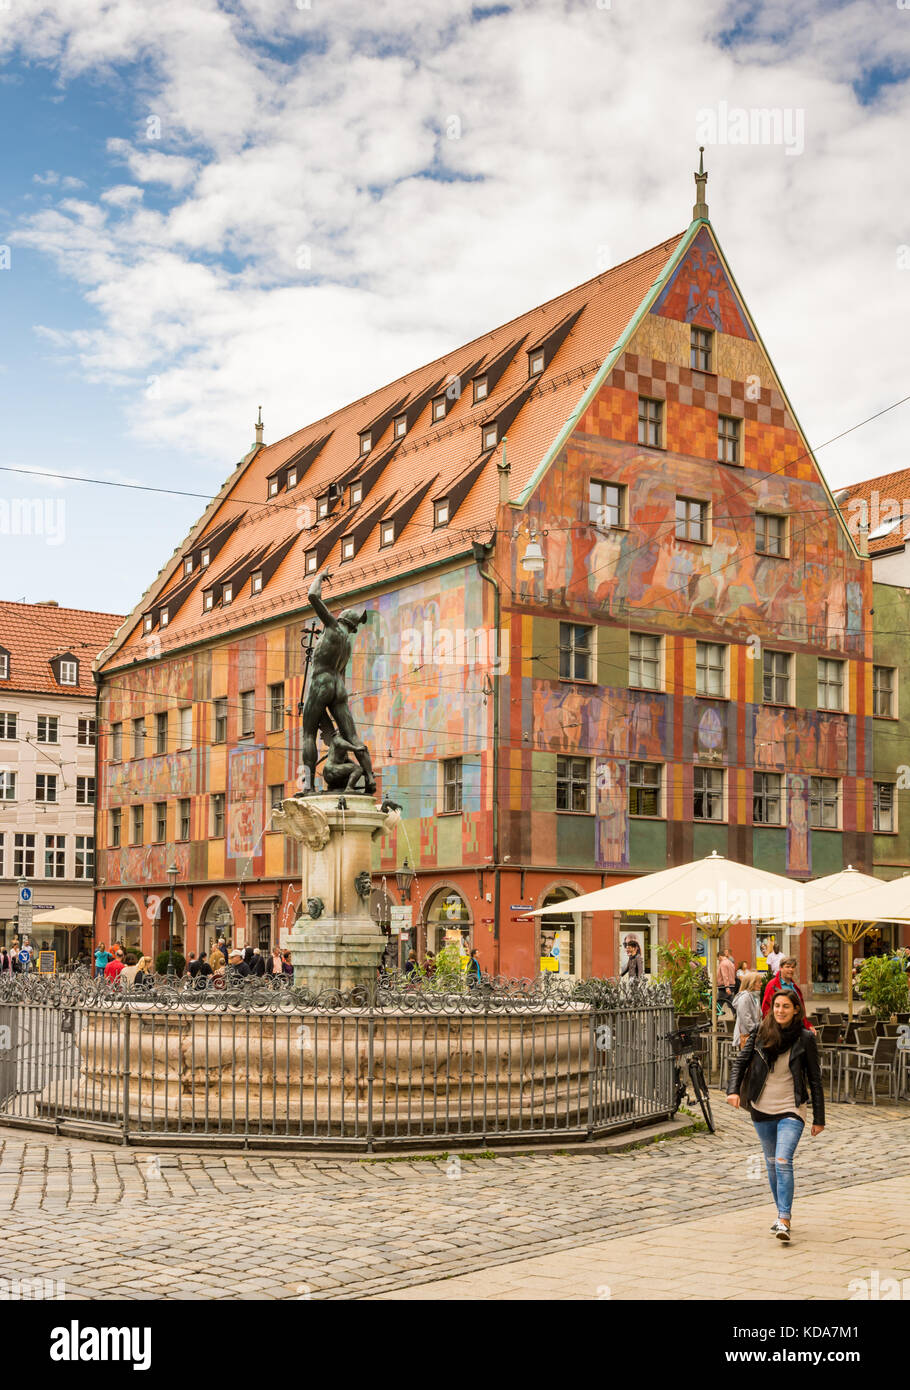 AUGSBURG, GERMANY - AUGUST 19: Old town with Merkur fountain and Weberhaus house in Augsburg, Germany on August - Stock Image